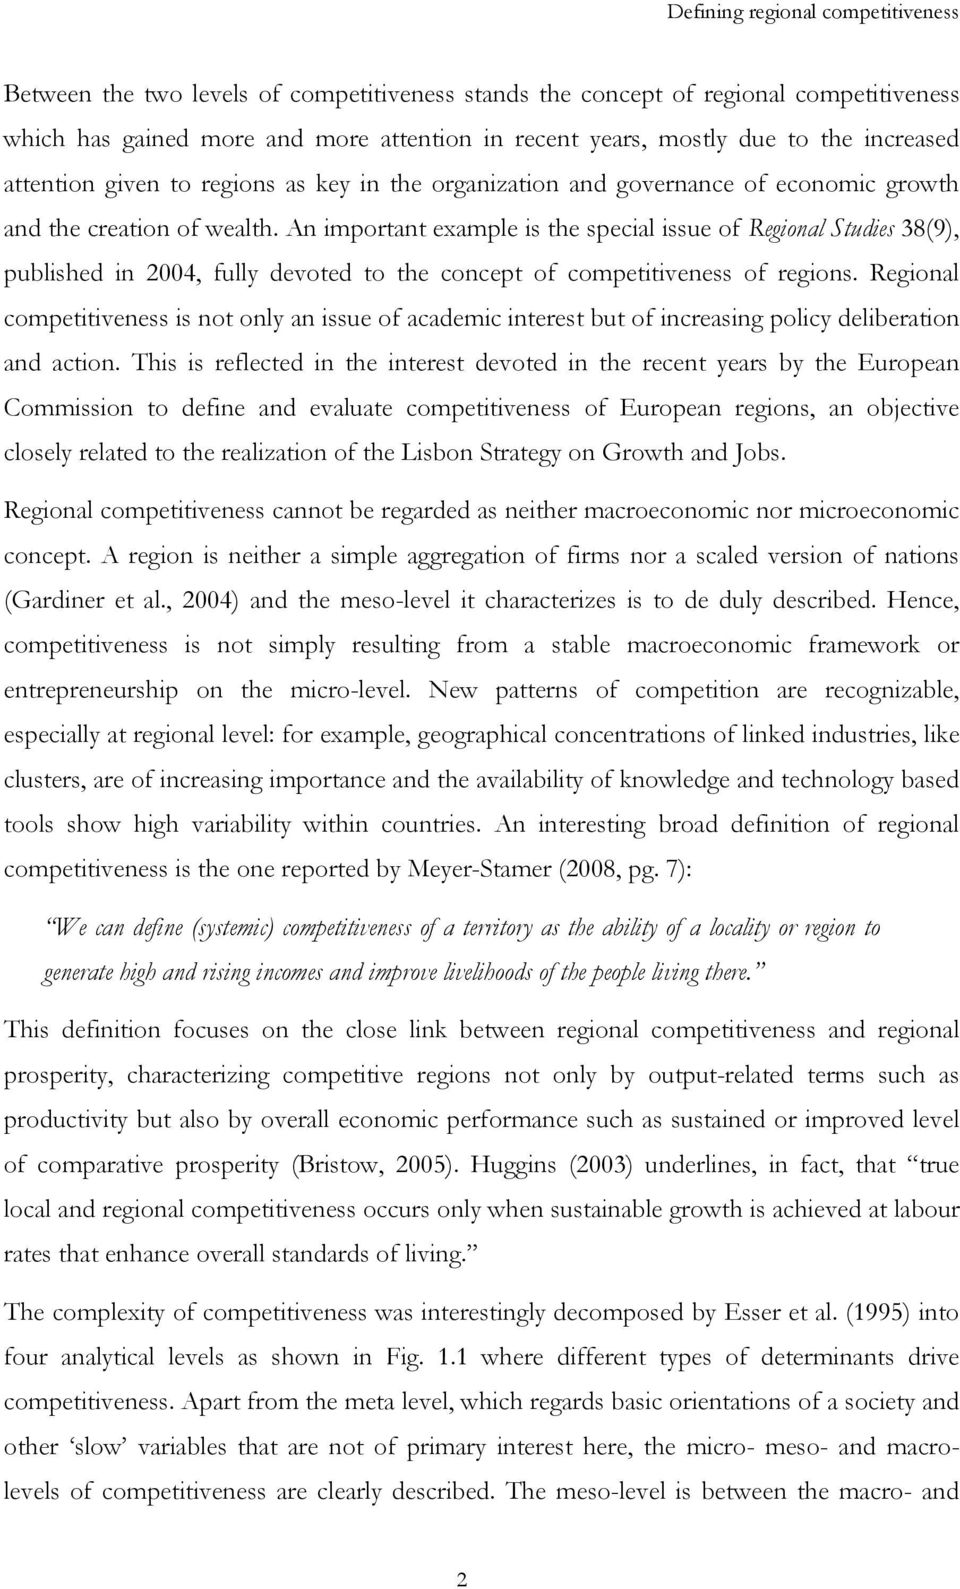 An important example is the special issue of Regional Studies 38(9), published in 2004, fully devoted to the concept of competitiveness of regions.